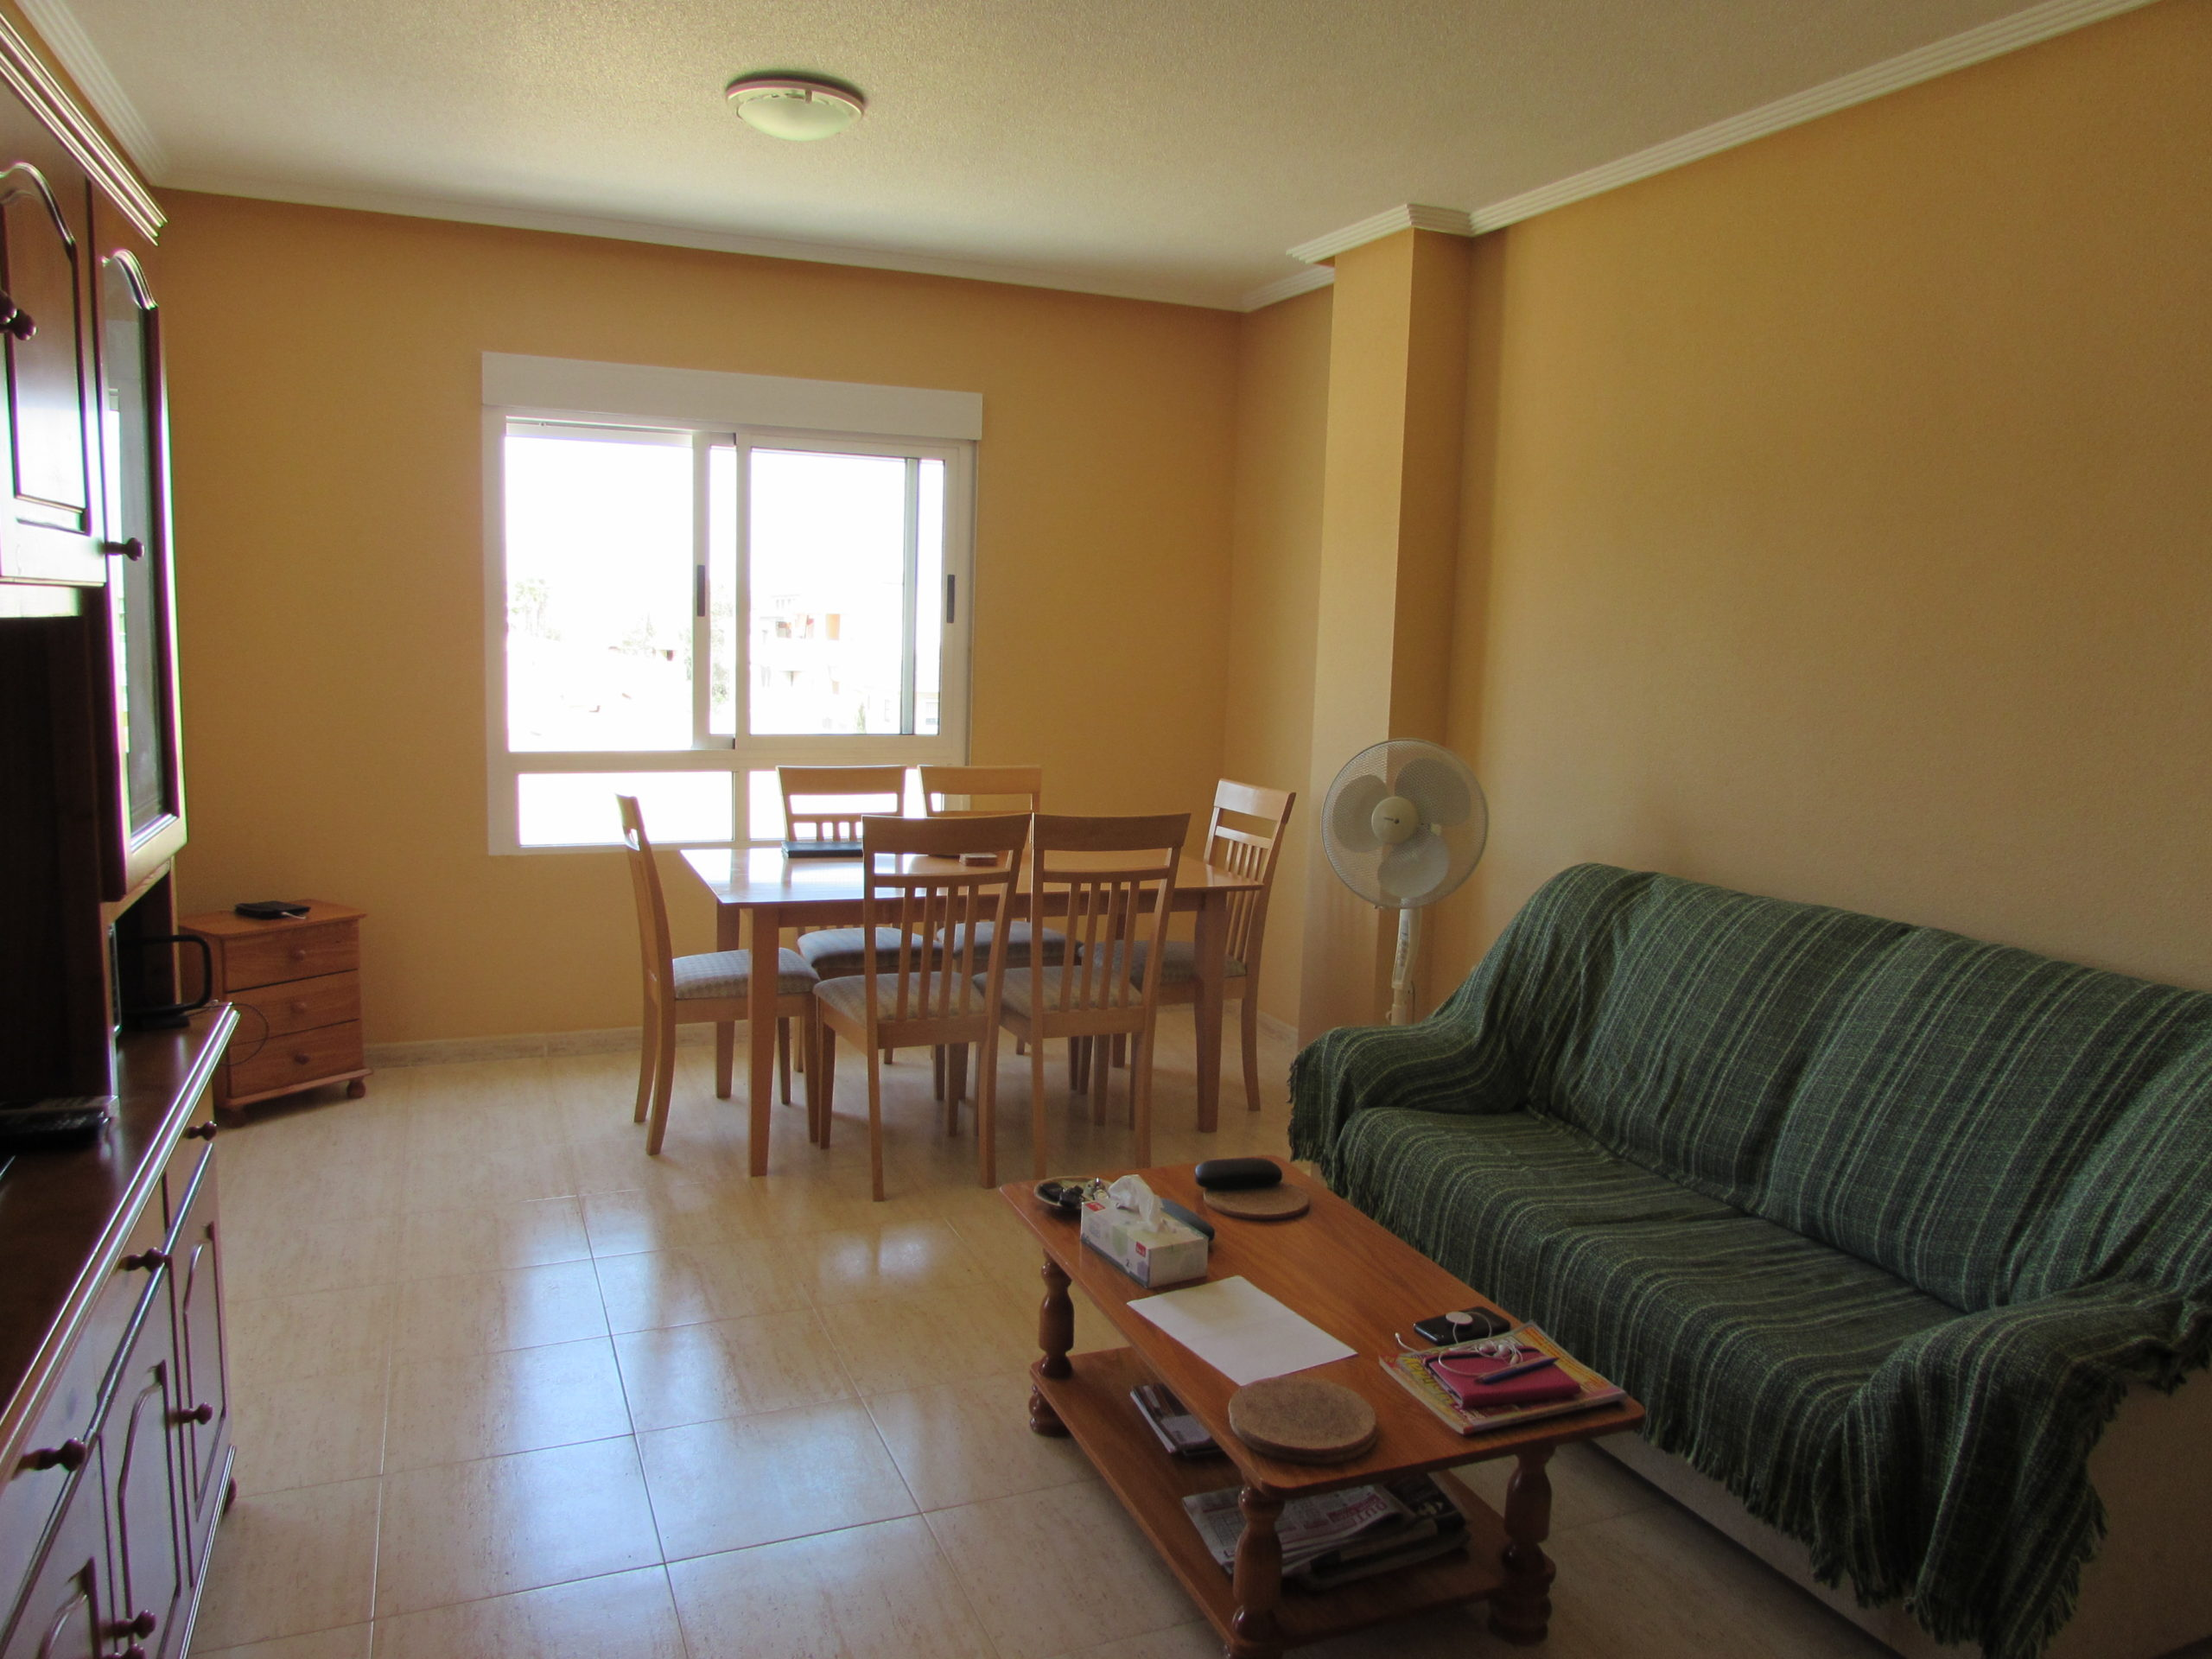 For sale: 3 bedroom apartment / flat in Dolores, Costa Blanca